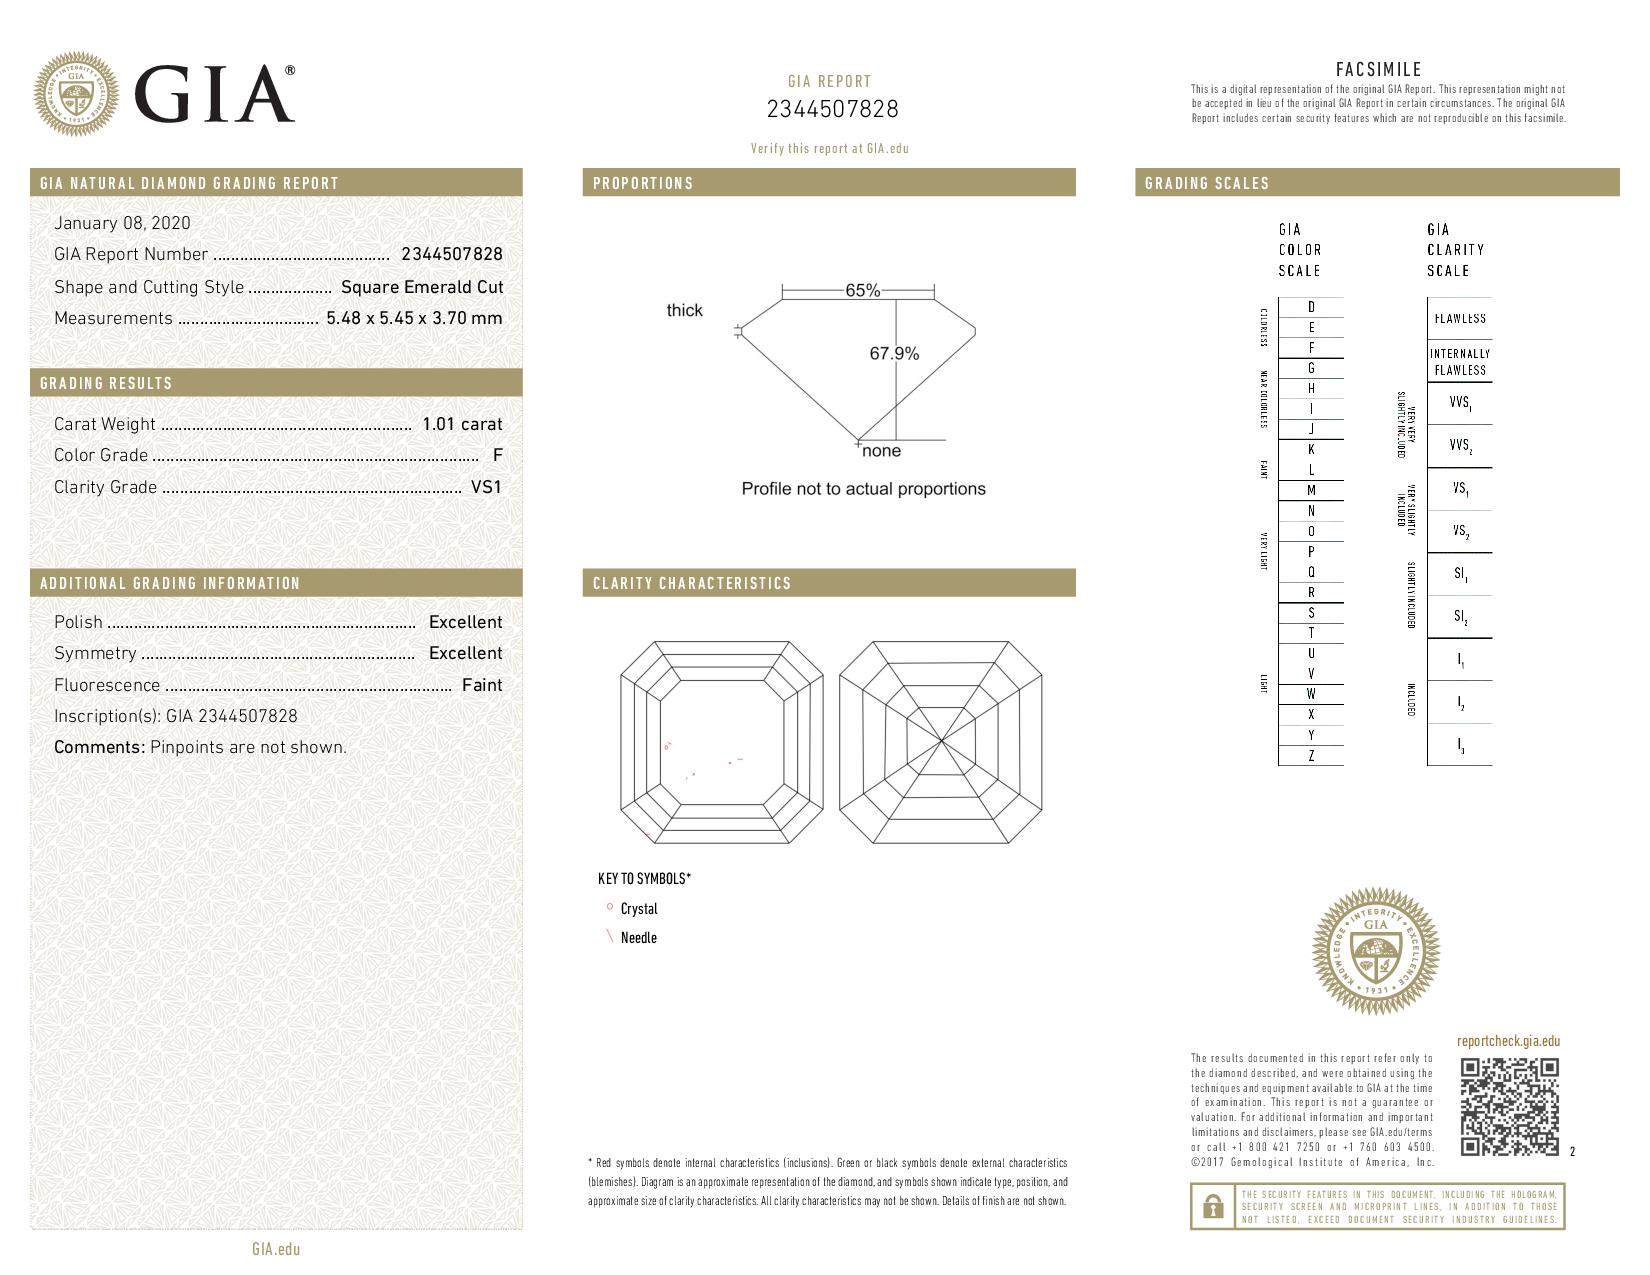 This is a 1.01 carat asscher shape, F color, VS1 clarity natural diamond accompanied by a GIA grading report.